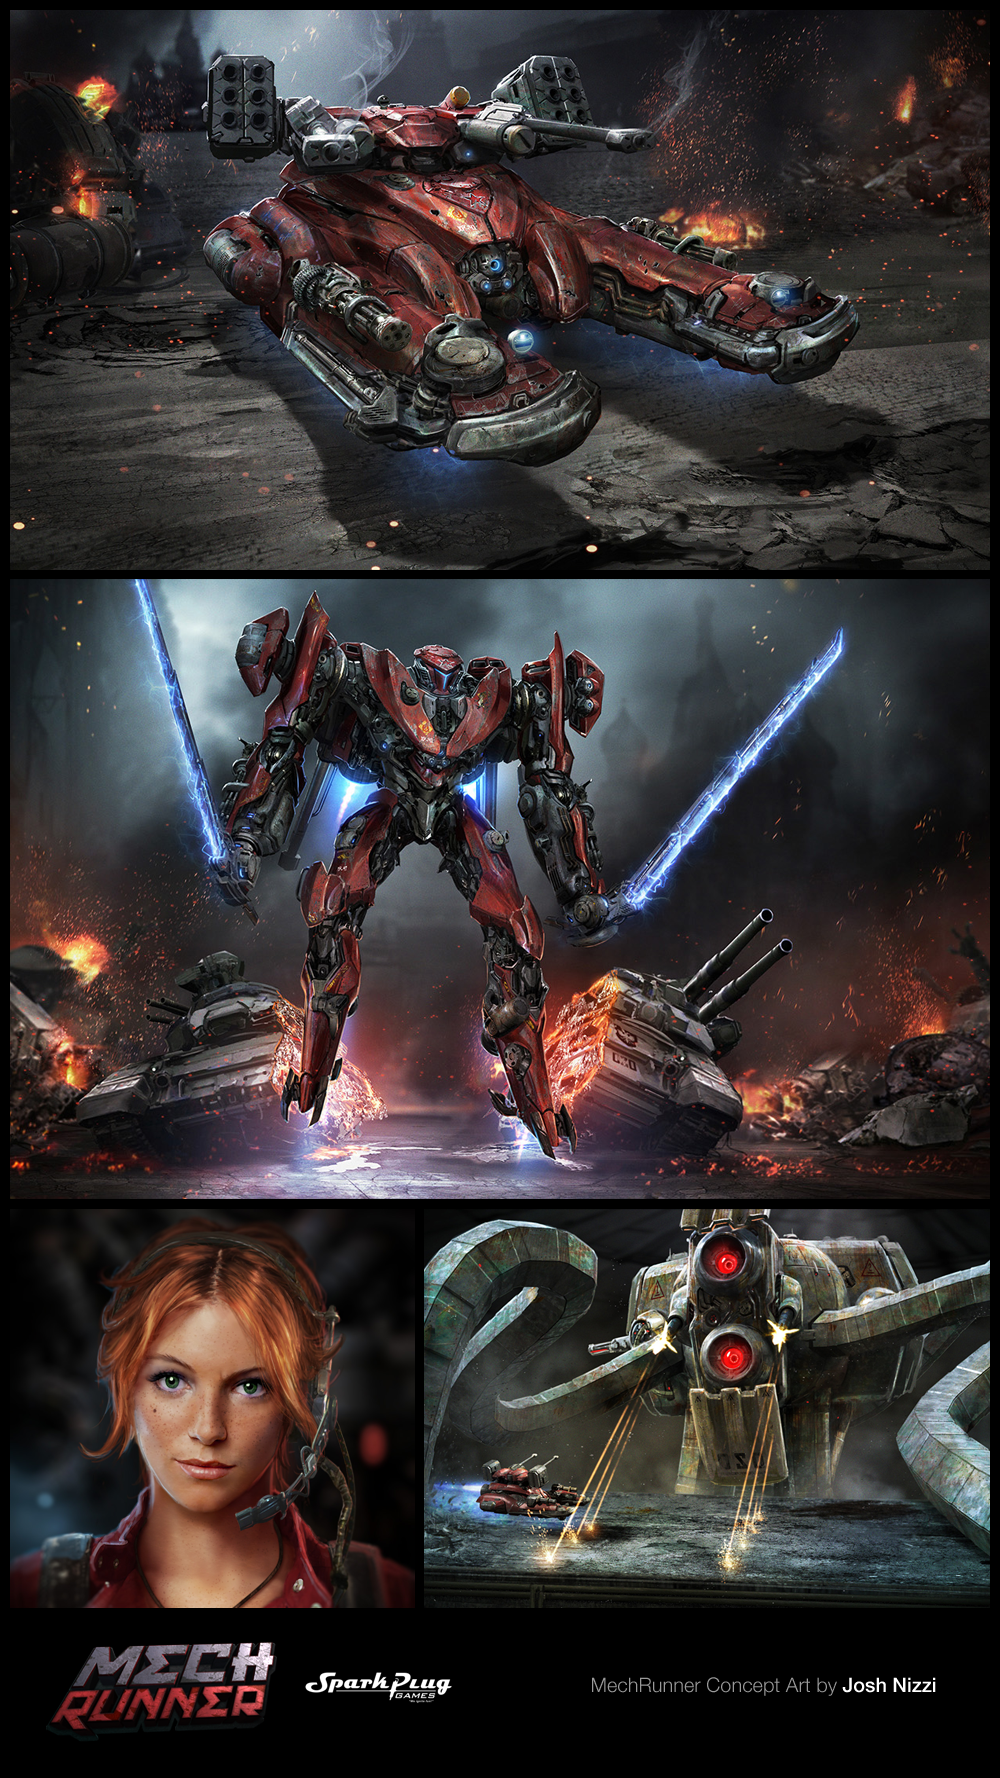 Take a look at MechRunner Concept Art by Josh Nizzi! http://goo.gl/ynjvnK  Concept Artist and Designer Josh Nizzi was kind enough to share some of the concept art he created for MechRunner, an arcade action game developed by Spark Plug Games.